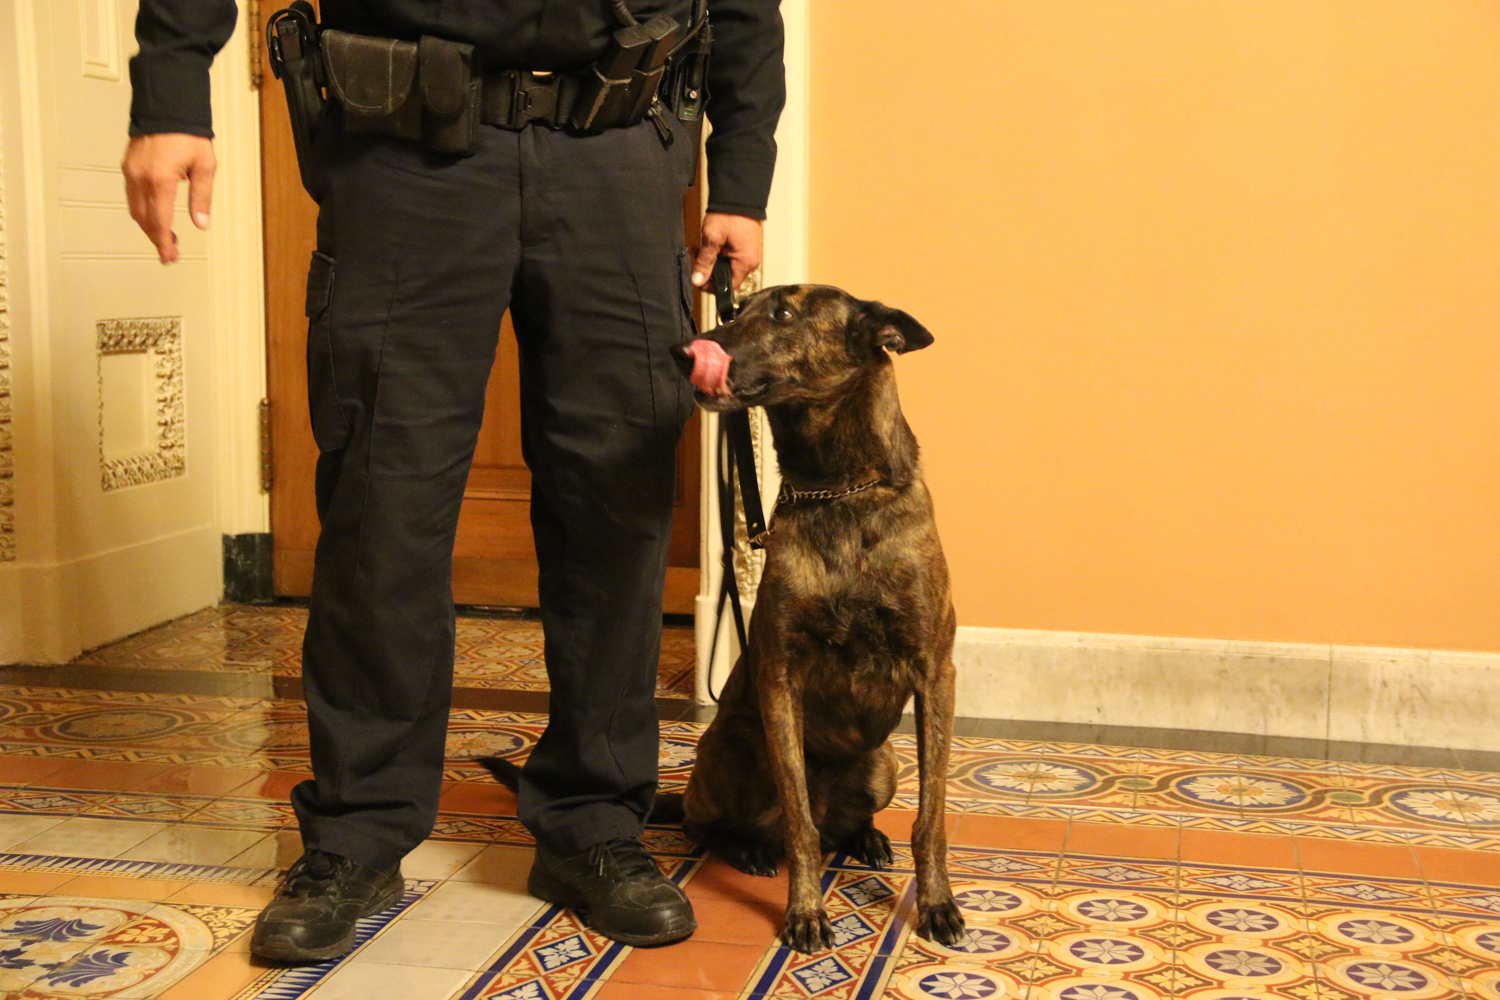 Bomb-sniffing dogs patrol the building as Capitol police conduct security sweeps before the State of the Union address.